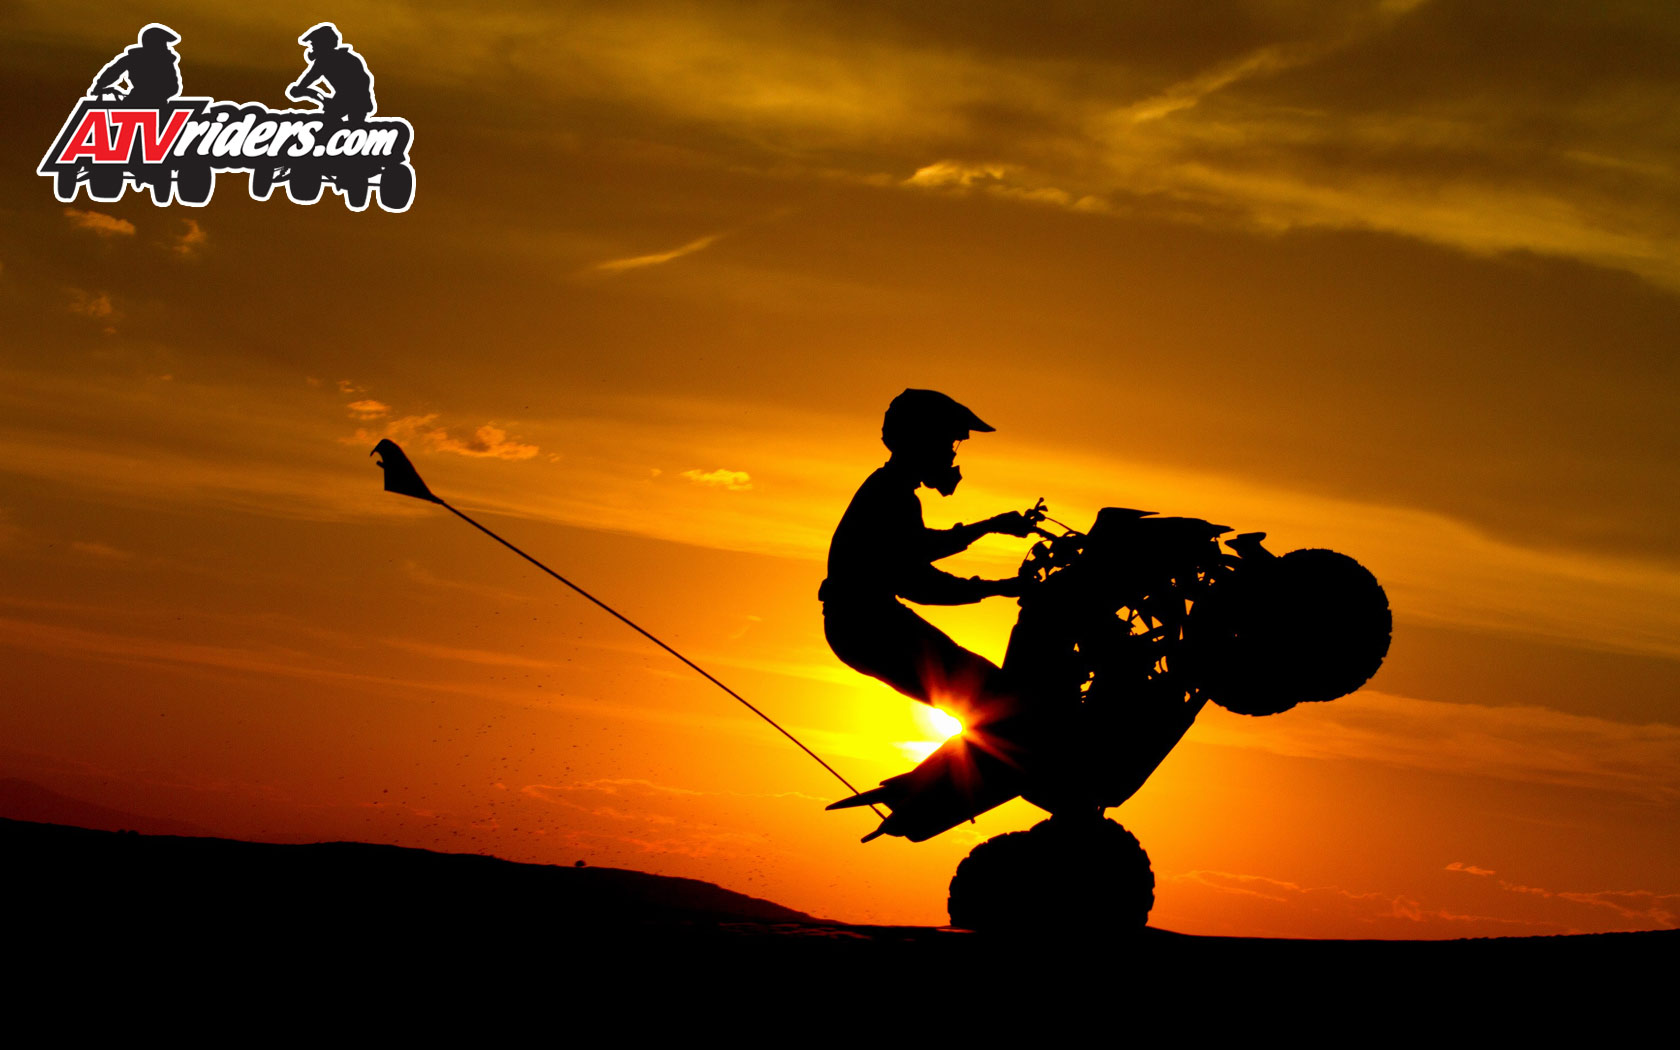 Yamaha Raptor 700 ATV   ATVriderscom Wednesday Wallpapers 1680x1050